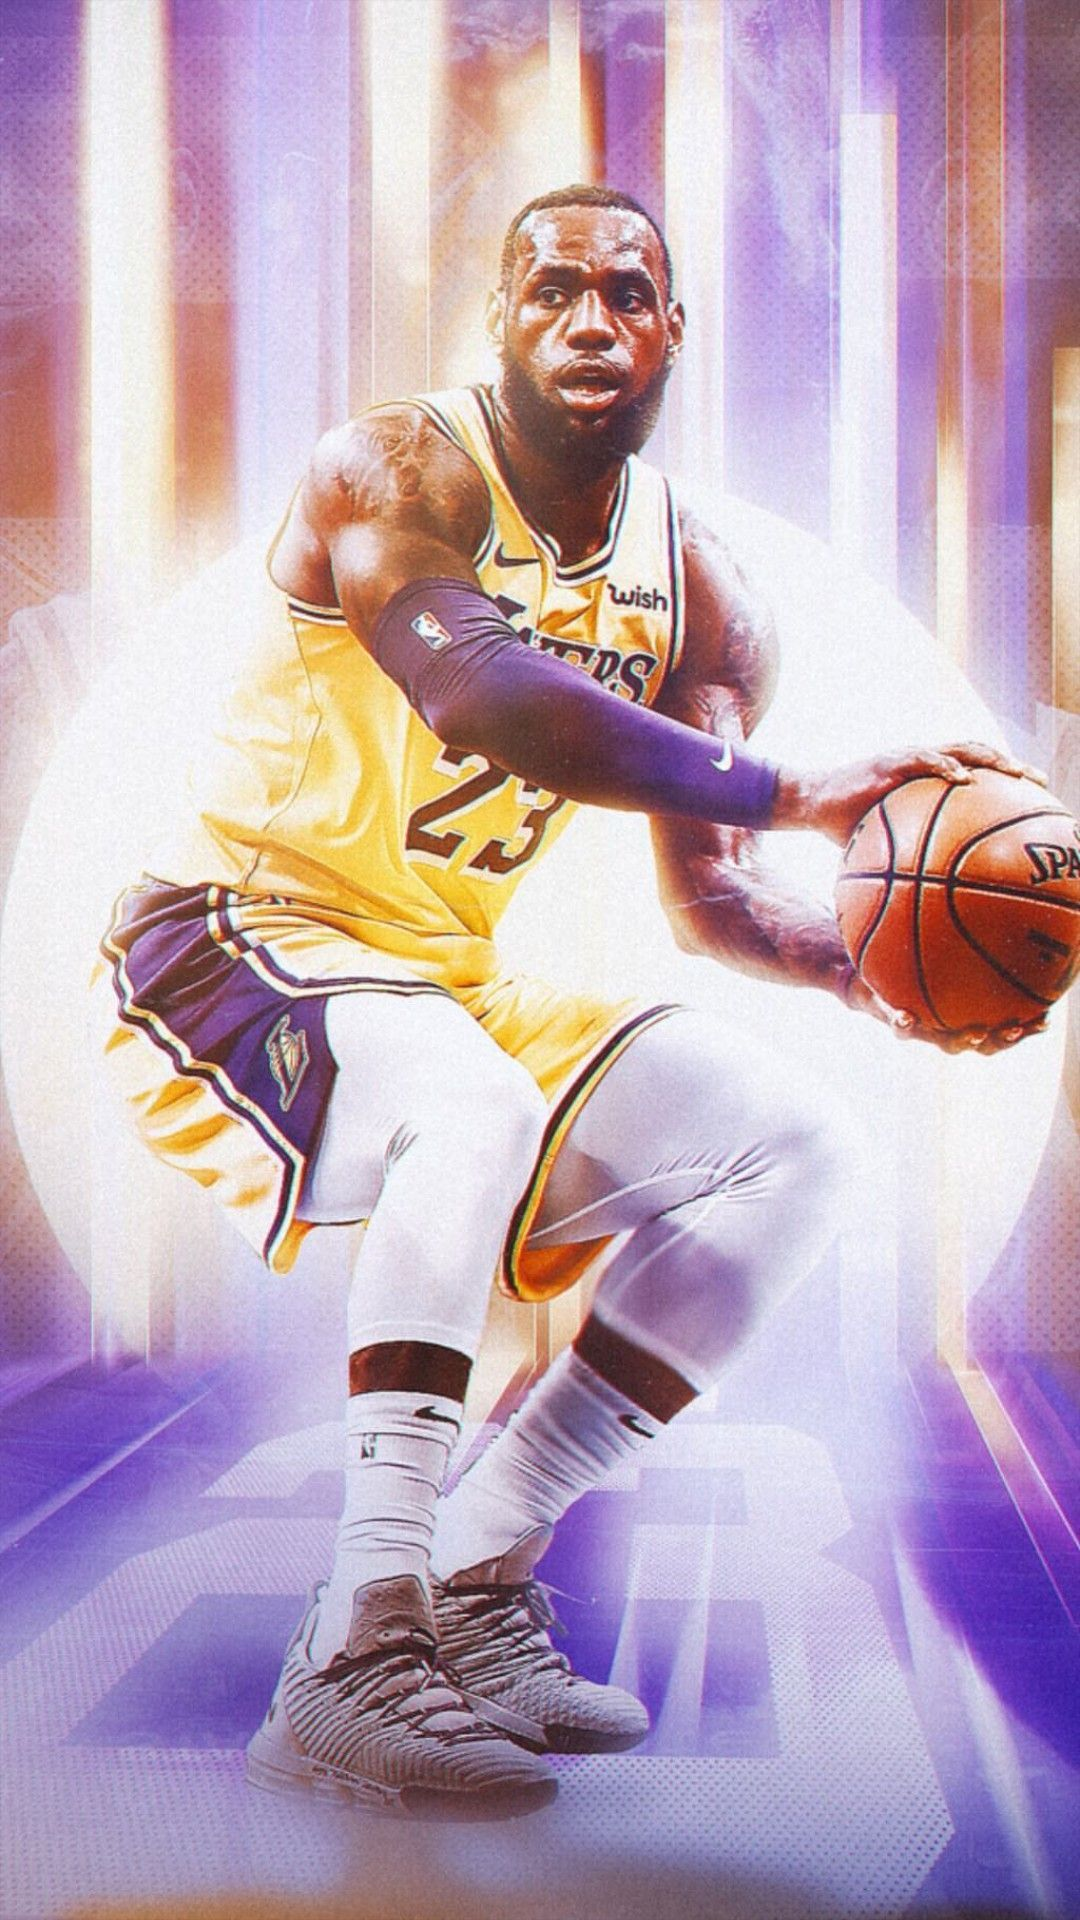 Lakers Anthony Davis Wallpaper Download In 2020 Lebron James Lakers Lebron James Wallpapers King Lebron James